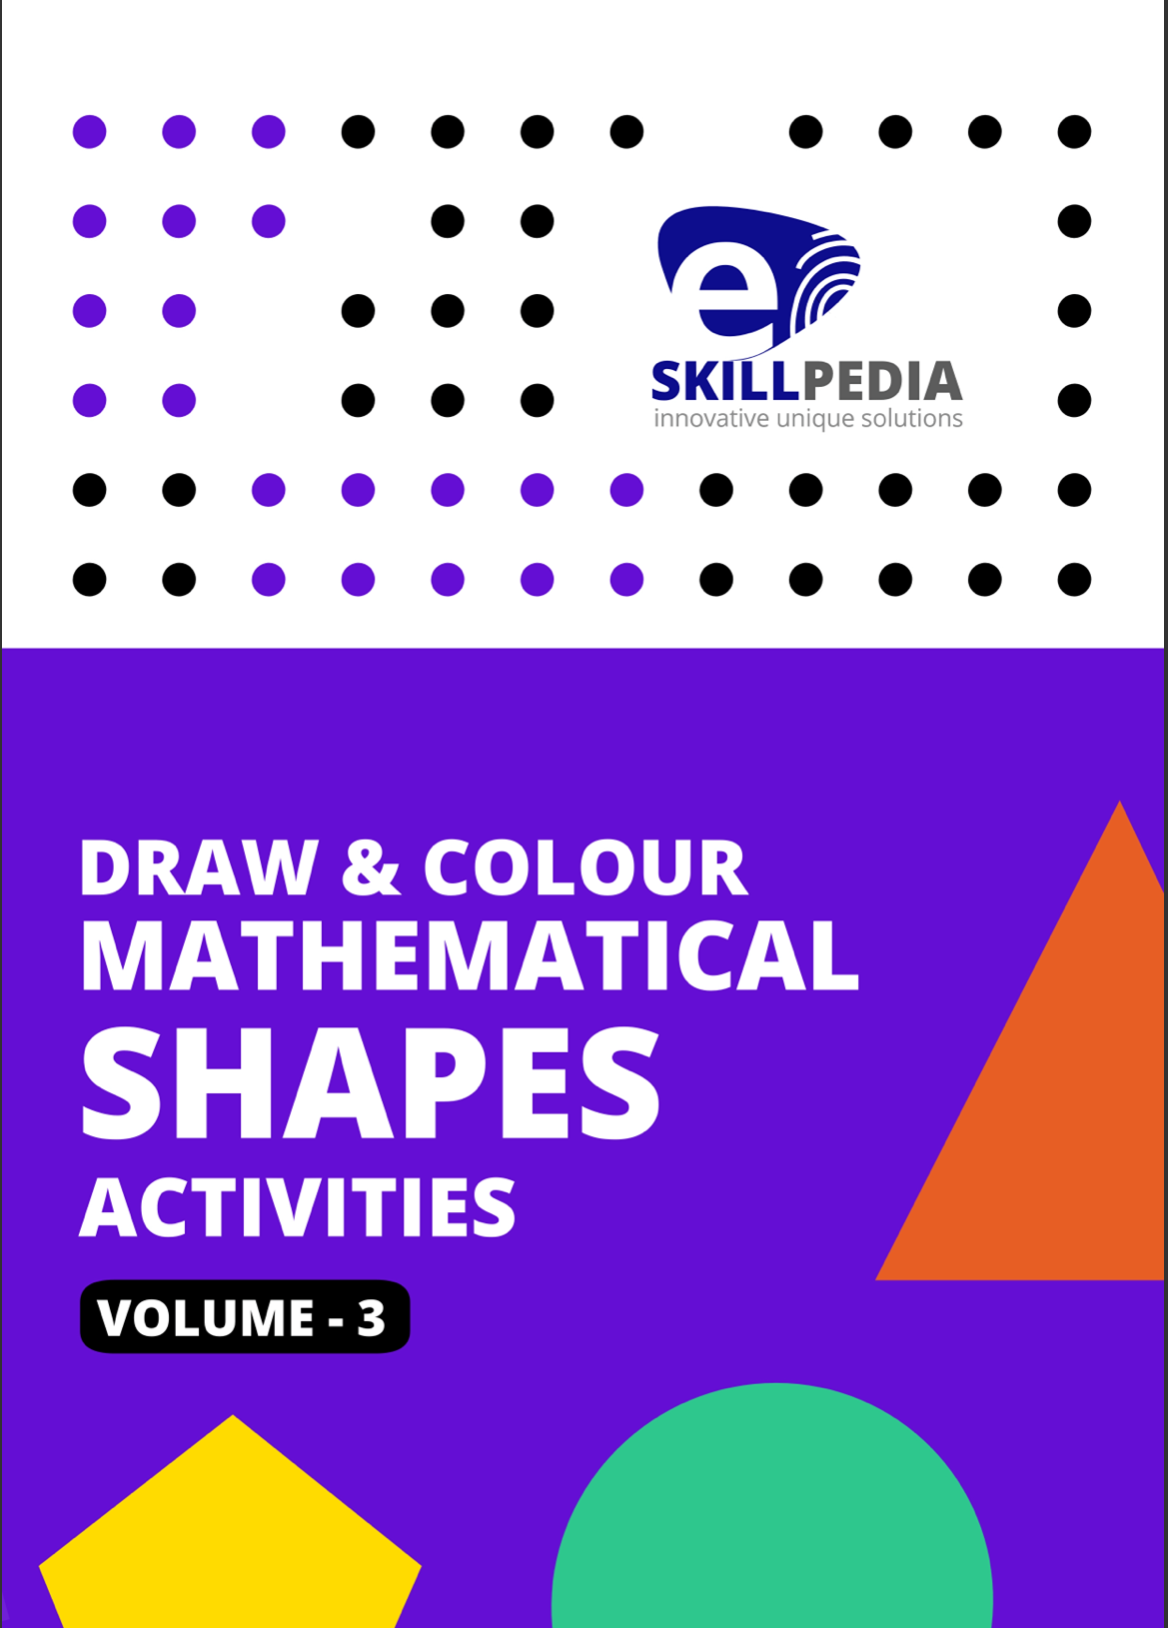 Draw & Colour Mathematical Shapes Activities (Volume 3)